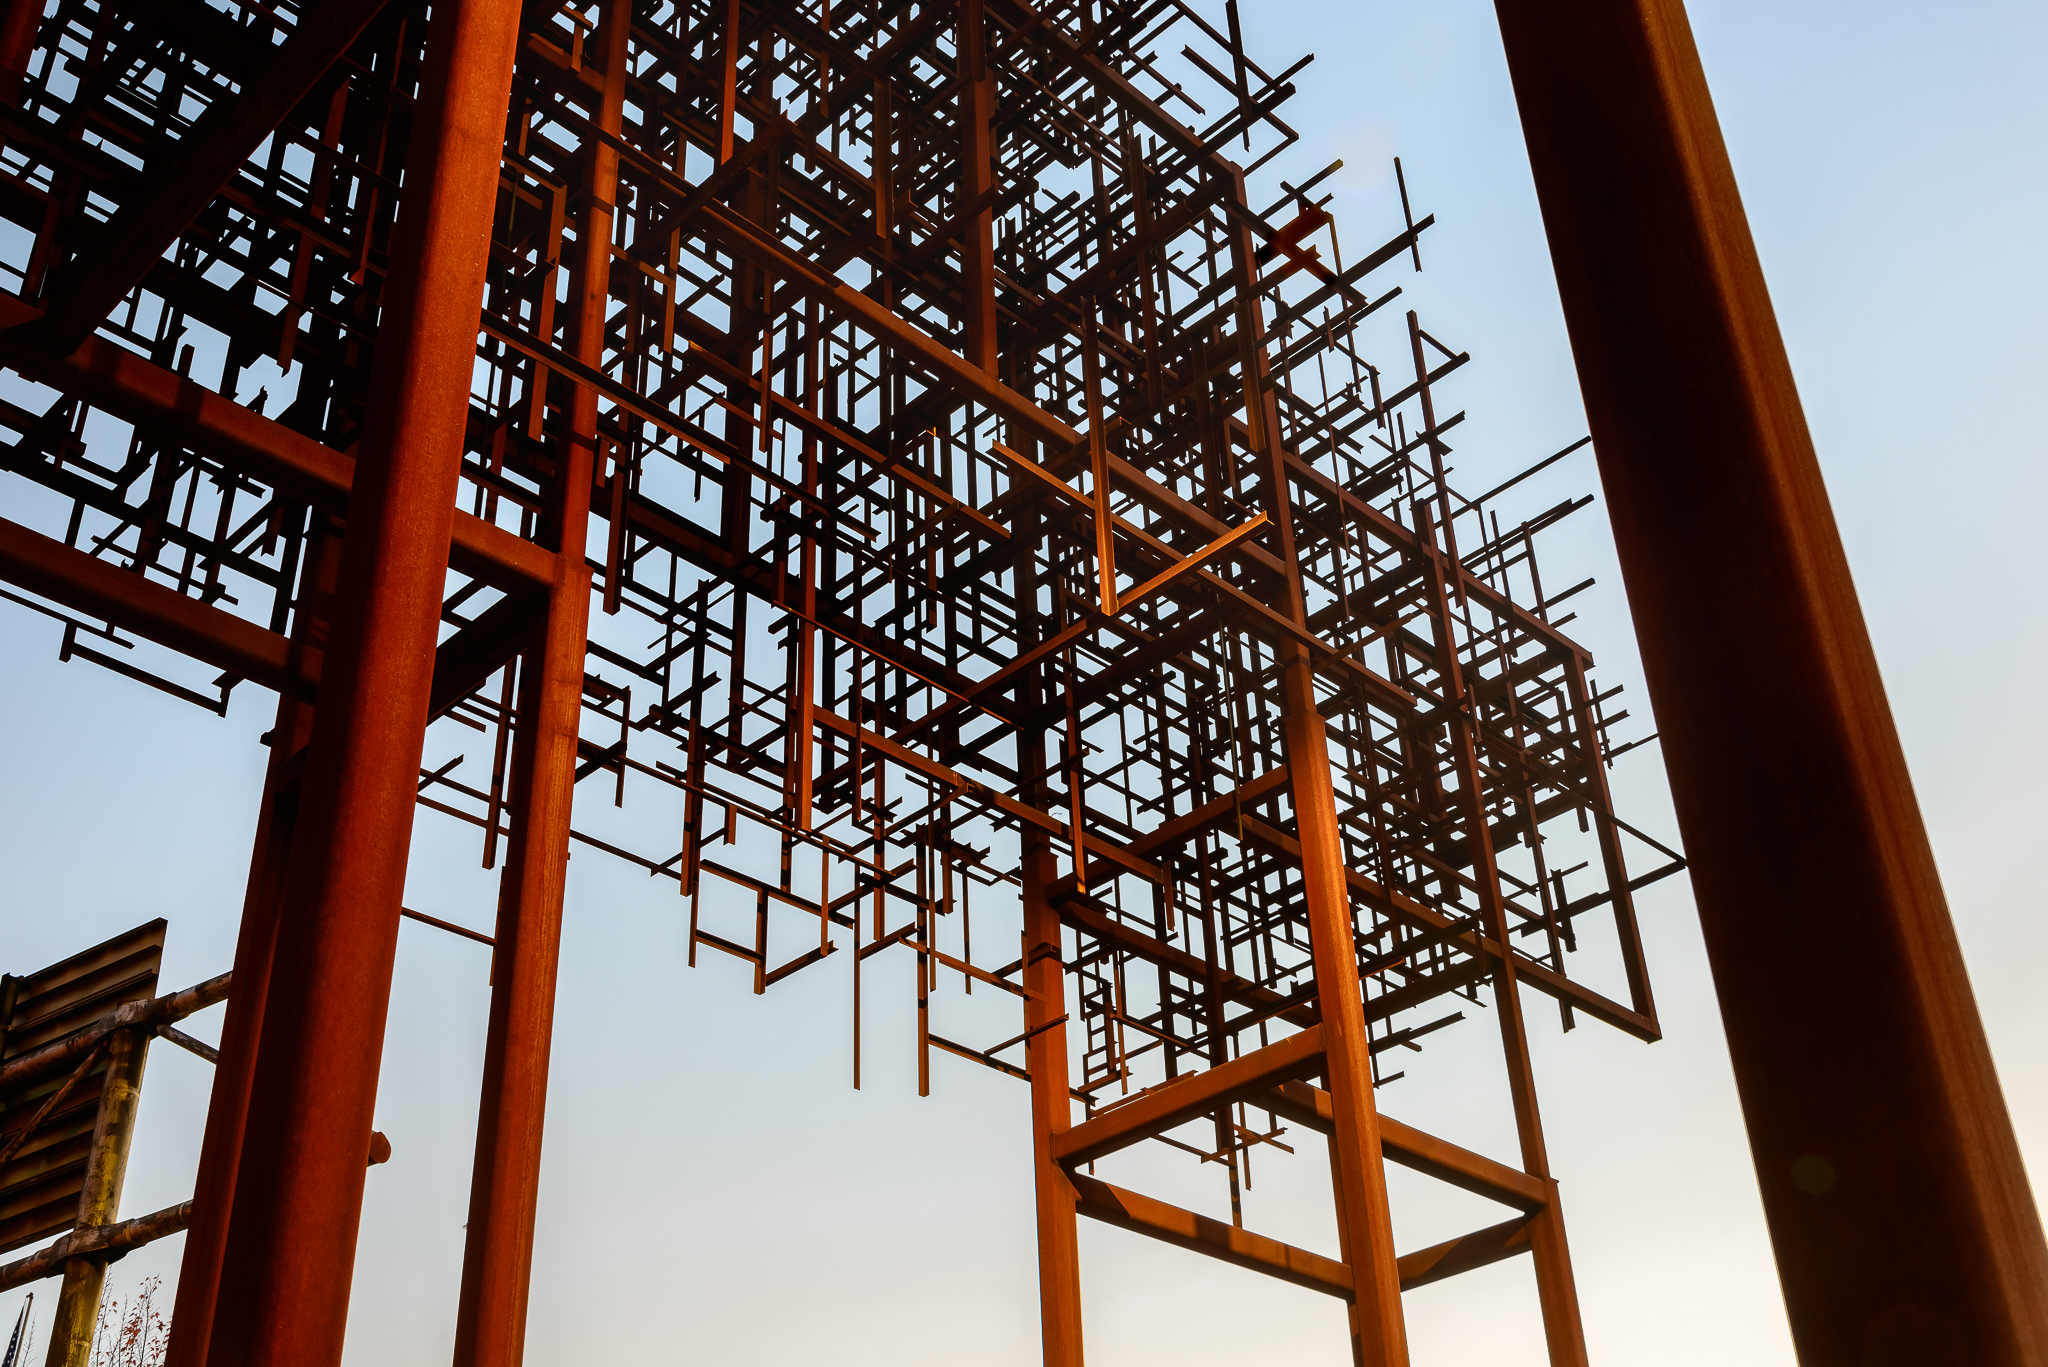 """Inversion: Plus Minus. This east-side public art installation pays homage to Portland's industrial past. Before knowing the actual title we just referred to it as """"that digital fractal thing in the sky."""" I mean that works right? Eastside, Portland."""